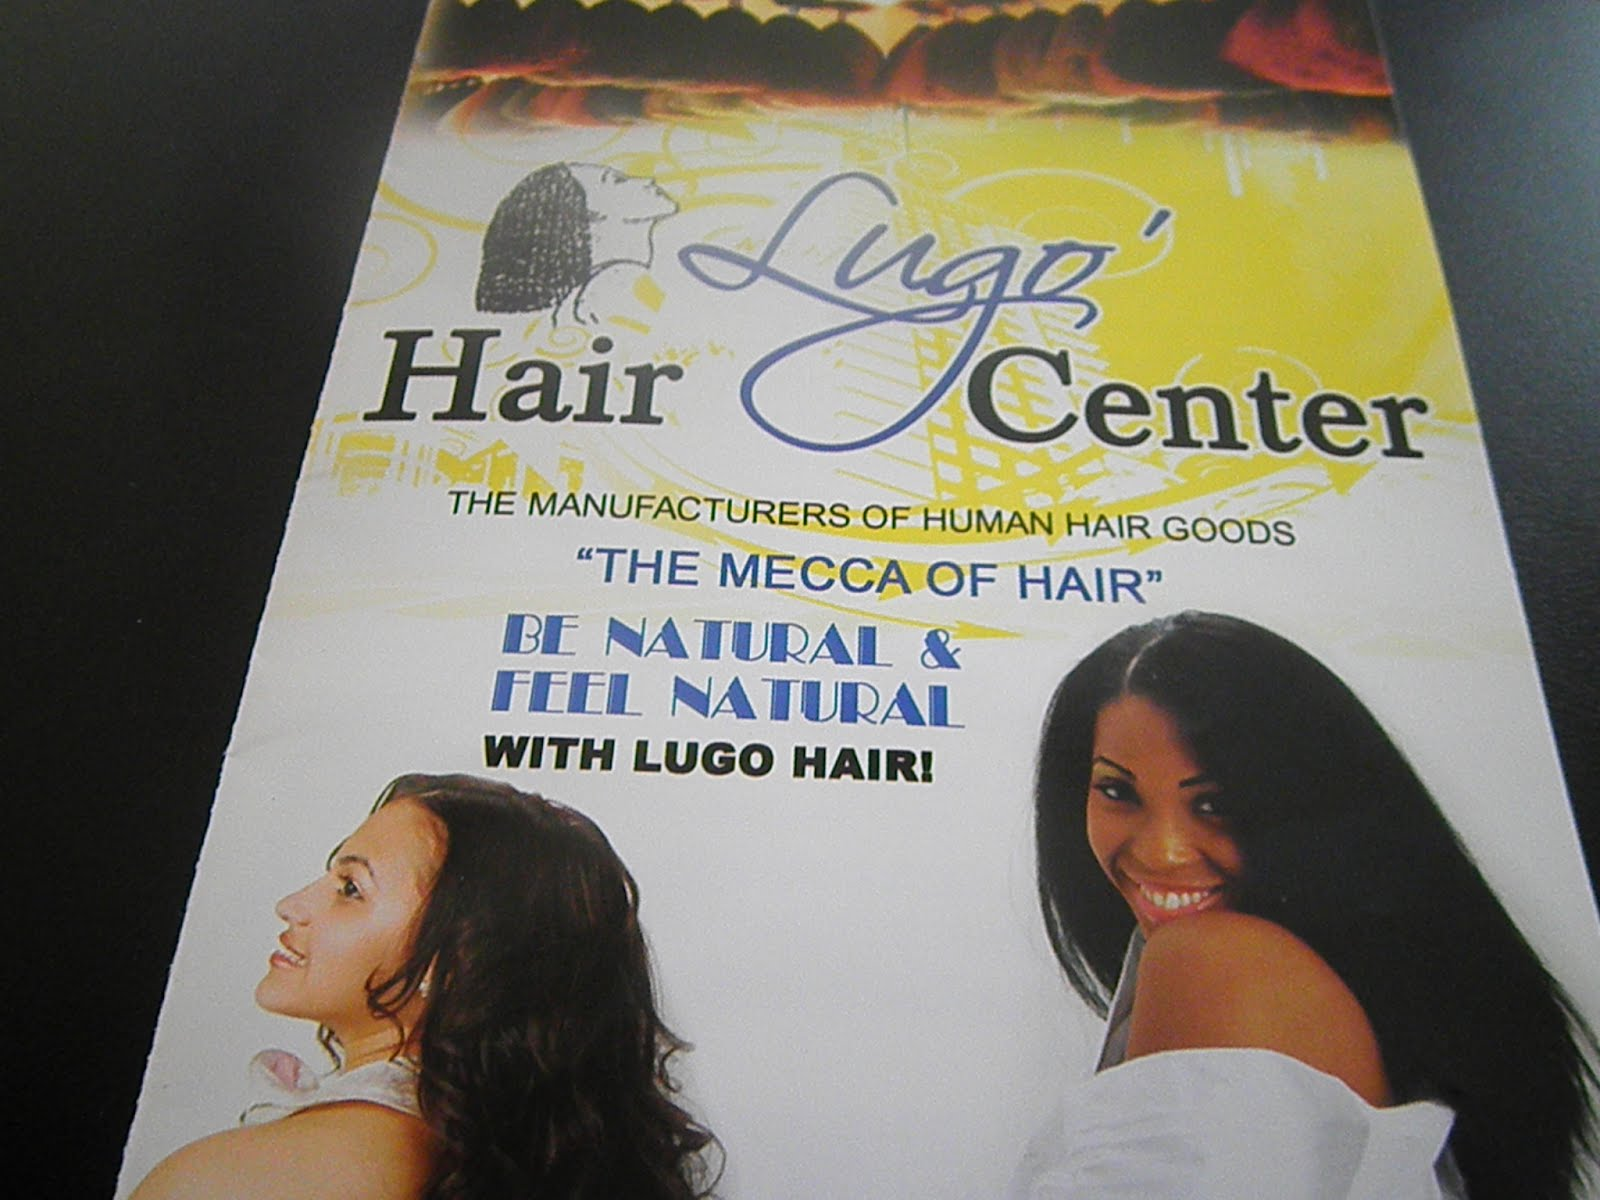 Lugo Hair Center Prices 99